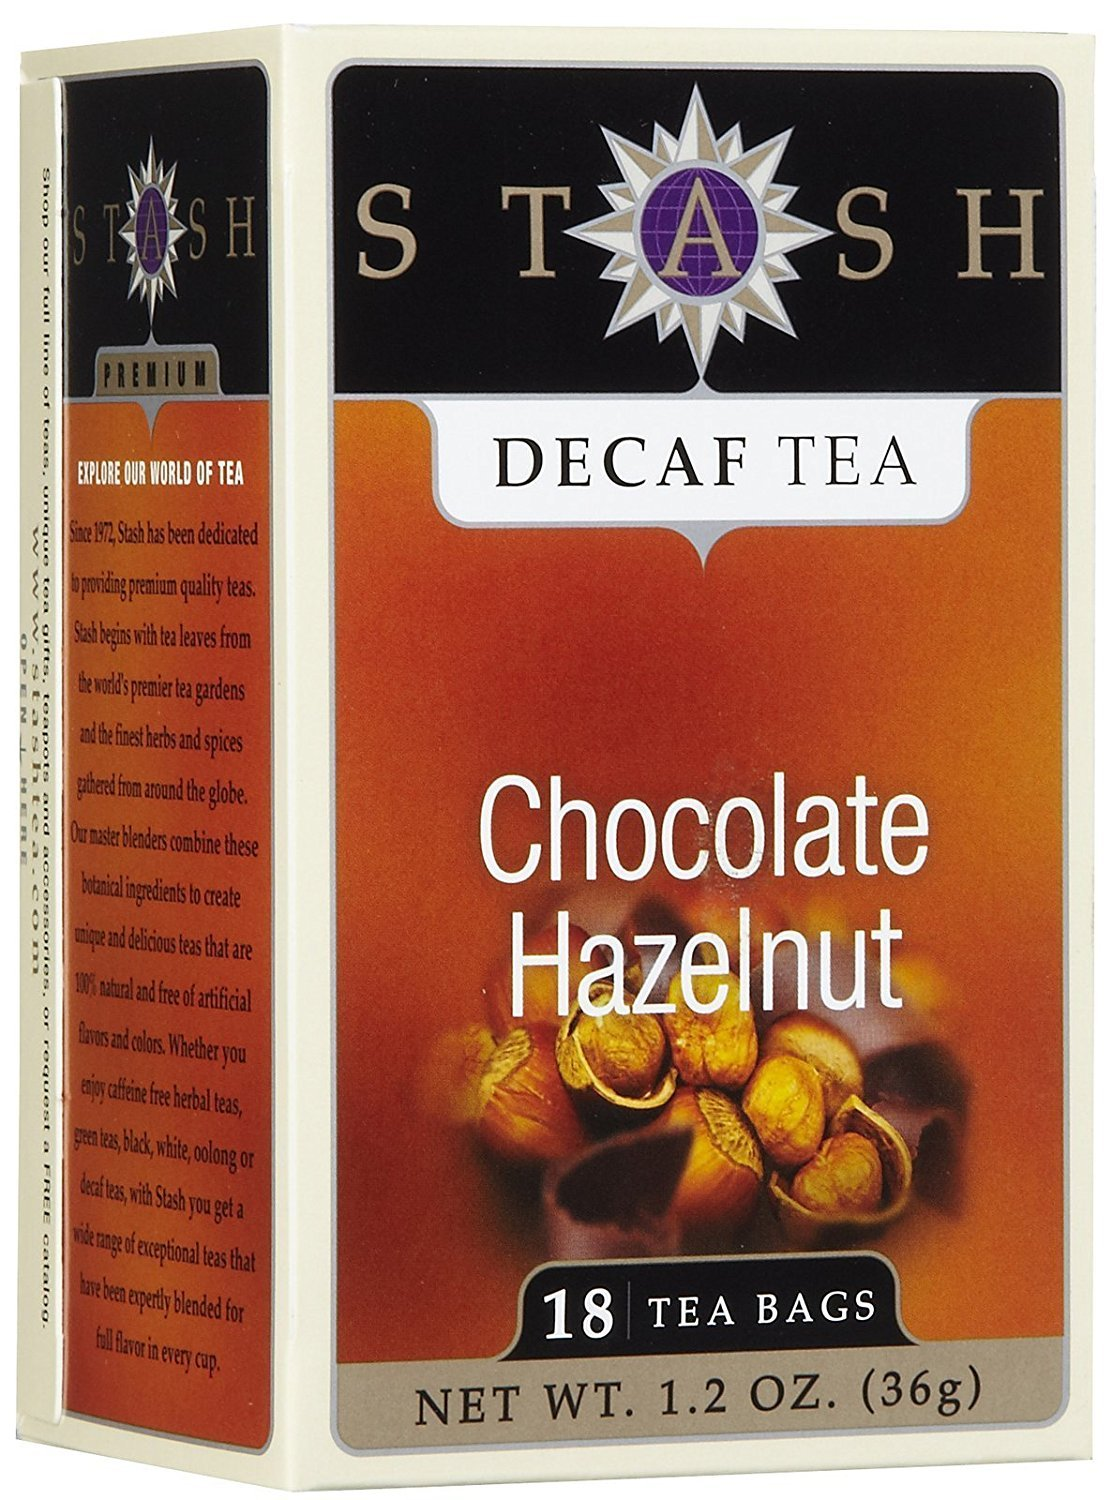 Stash Tea Decaf Chocolate Hazelnut Tea - 18 ct